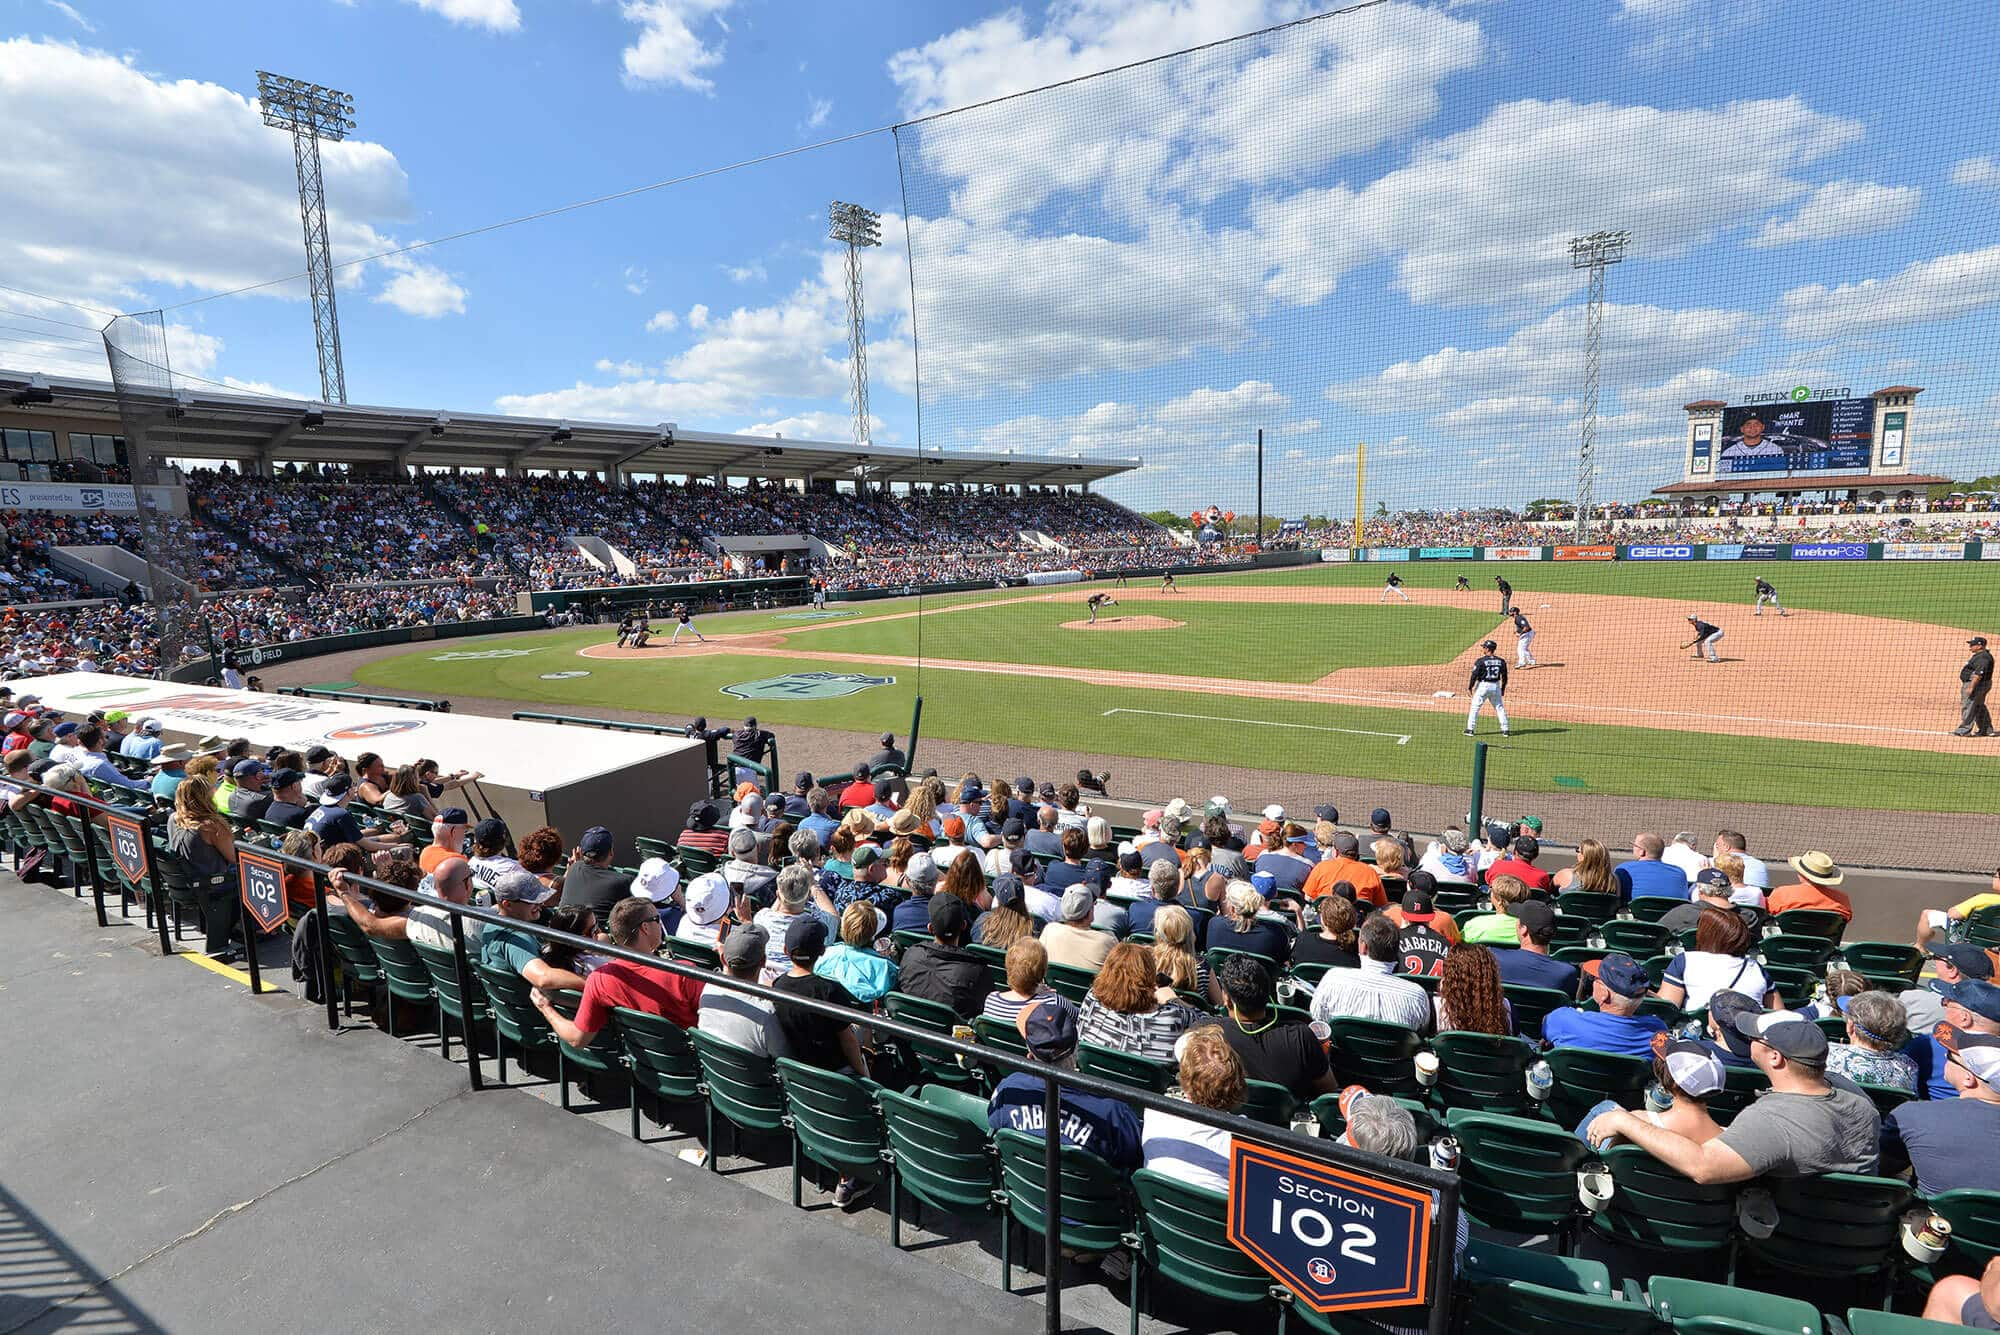 crowd during baseball game at Publix Field at Joker Marchant Stadium in Lakeland, FL